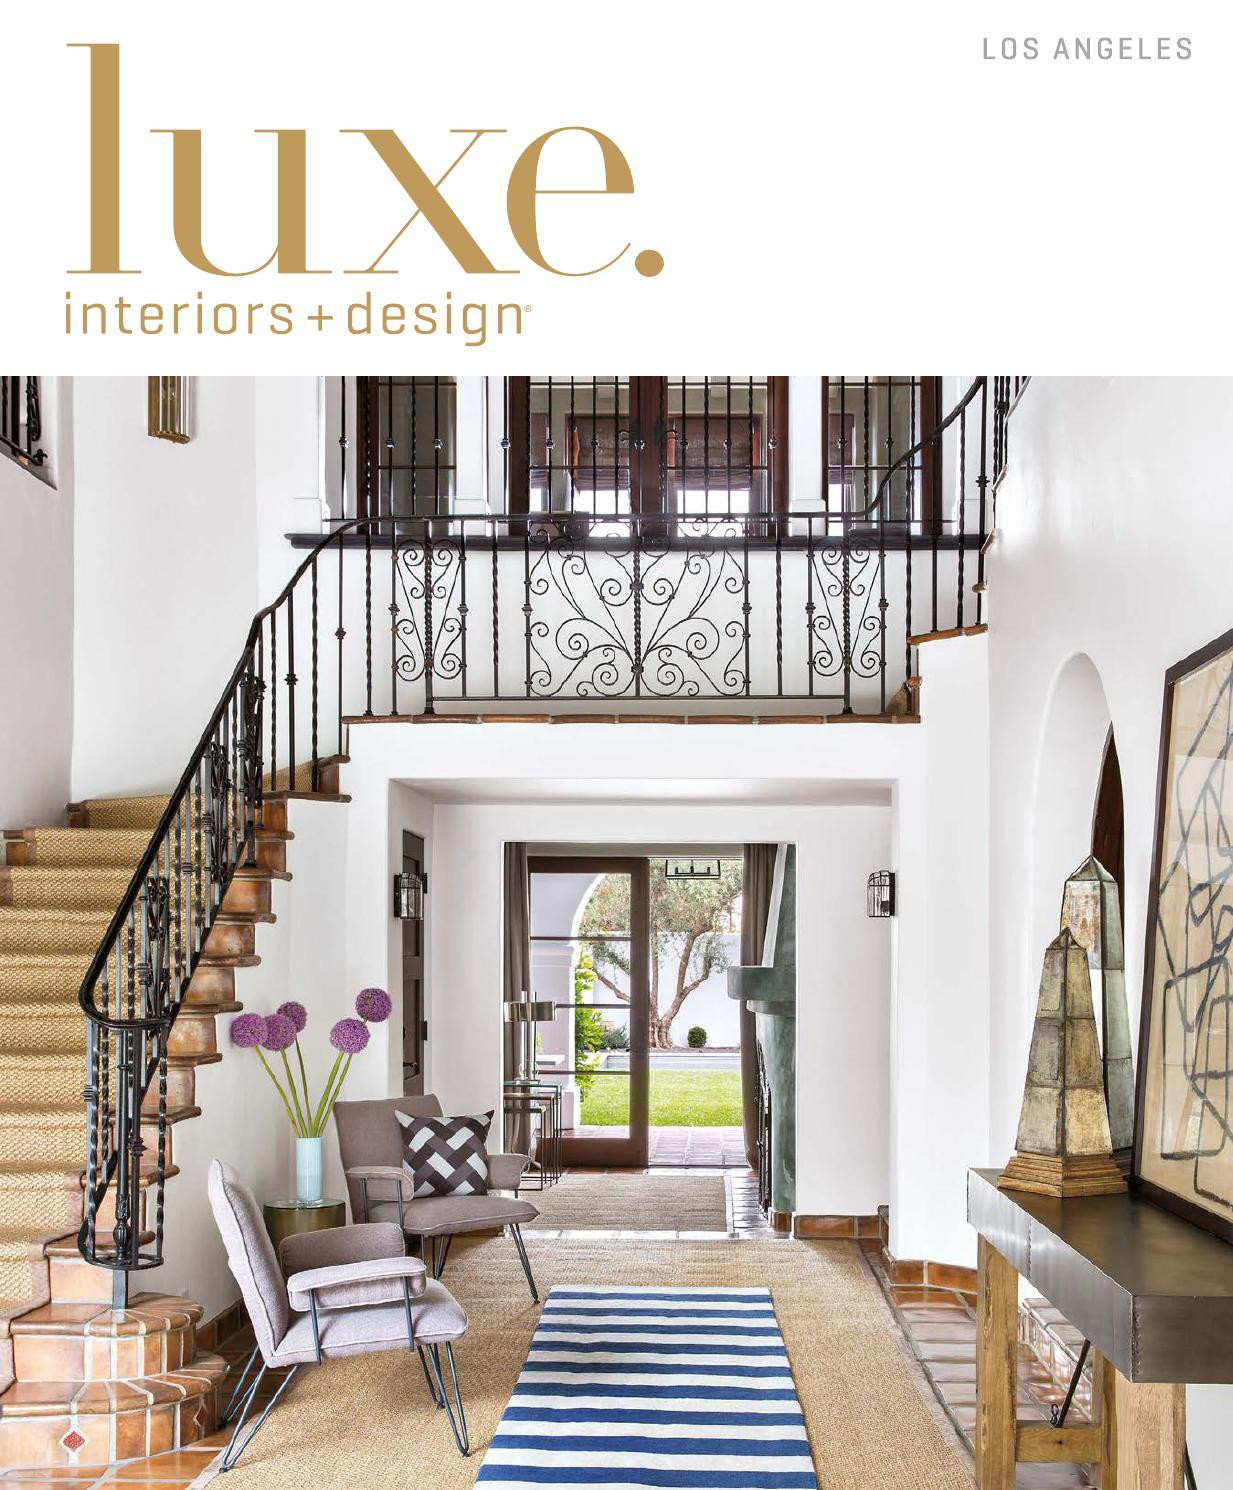 Hardwood Flooring Depot Laguna Niguel Of Luxe Magazine September 2015 Los Angeles by Sandowa issuu with Page 1